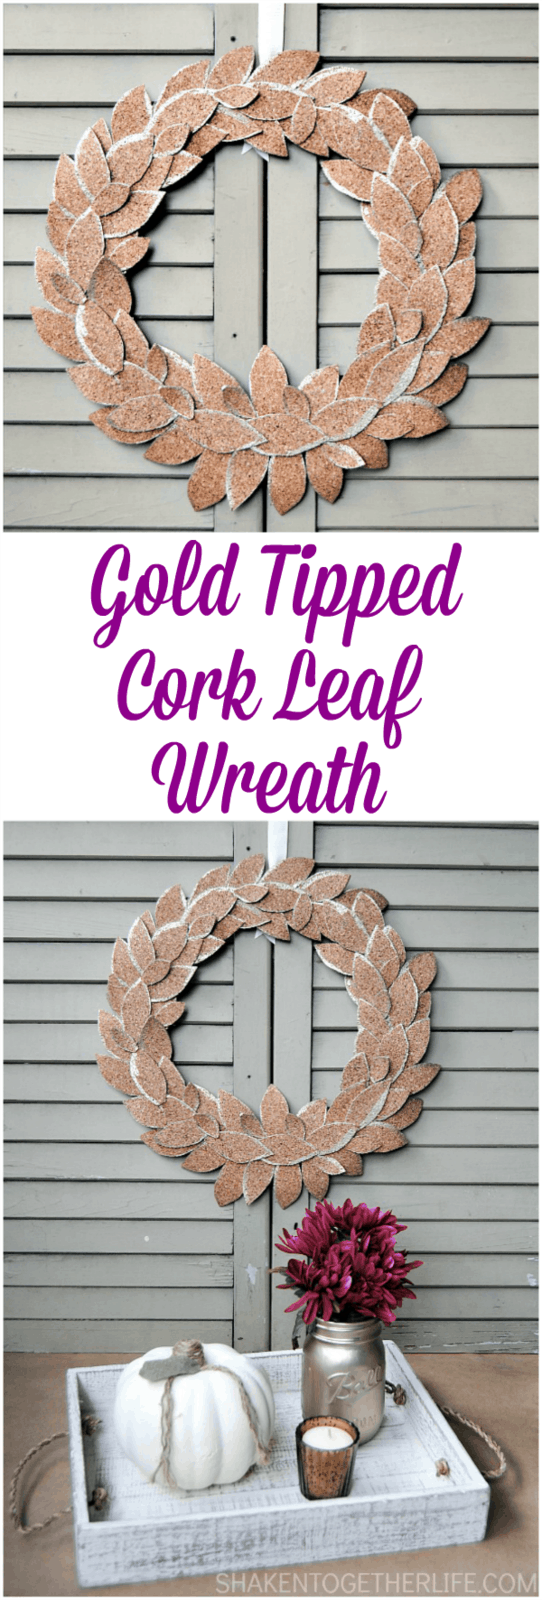 LOVE this gorgeous Gold Tipped Cork Leaf Wreath from Shaken Together - great idea for simple and neutral Fall decor!